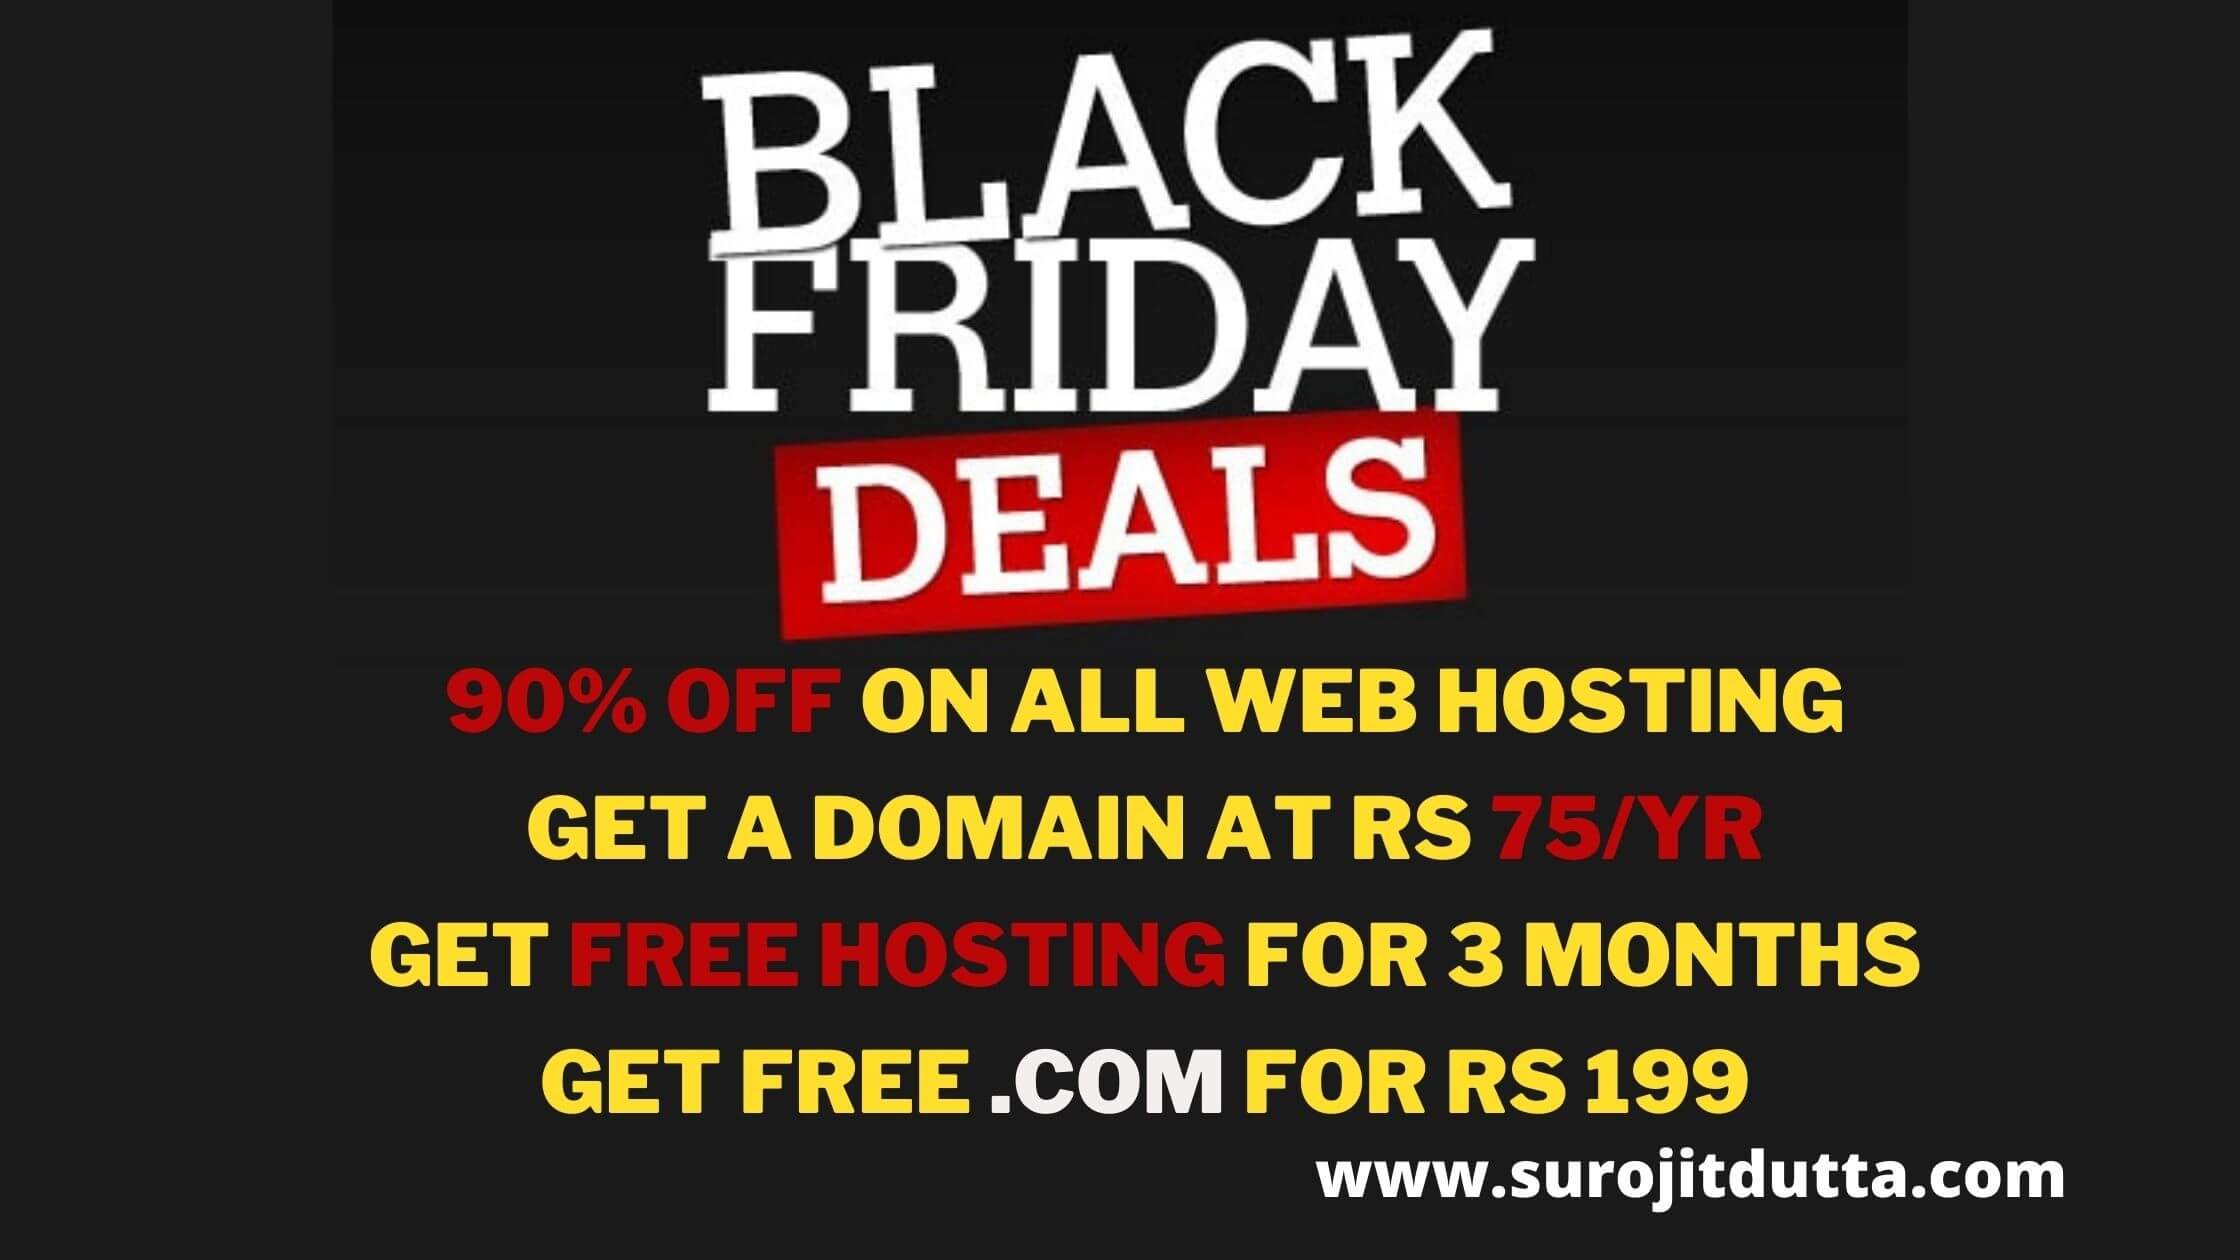 Black Friday Deals 2020- Surojitdutta.com